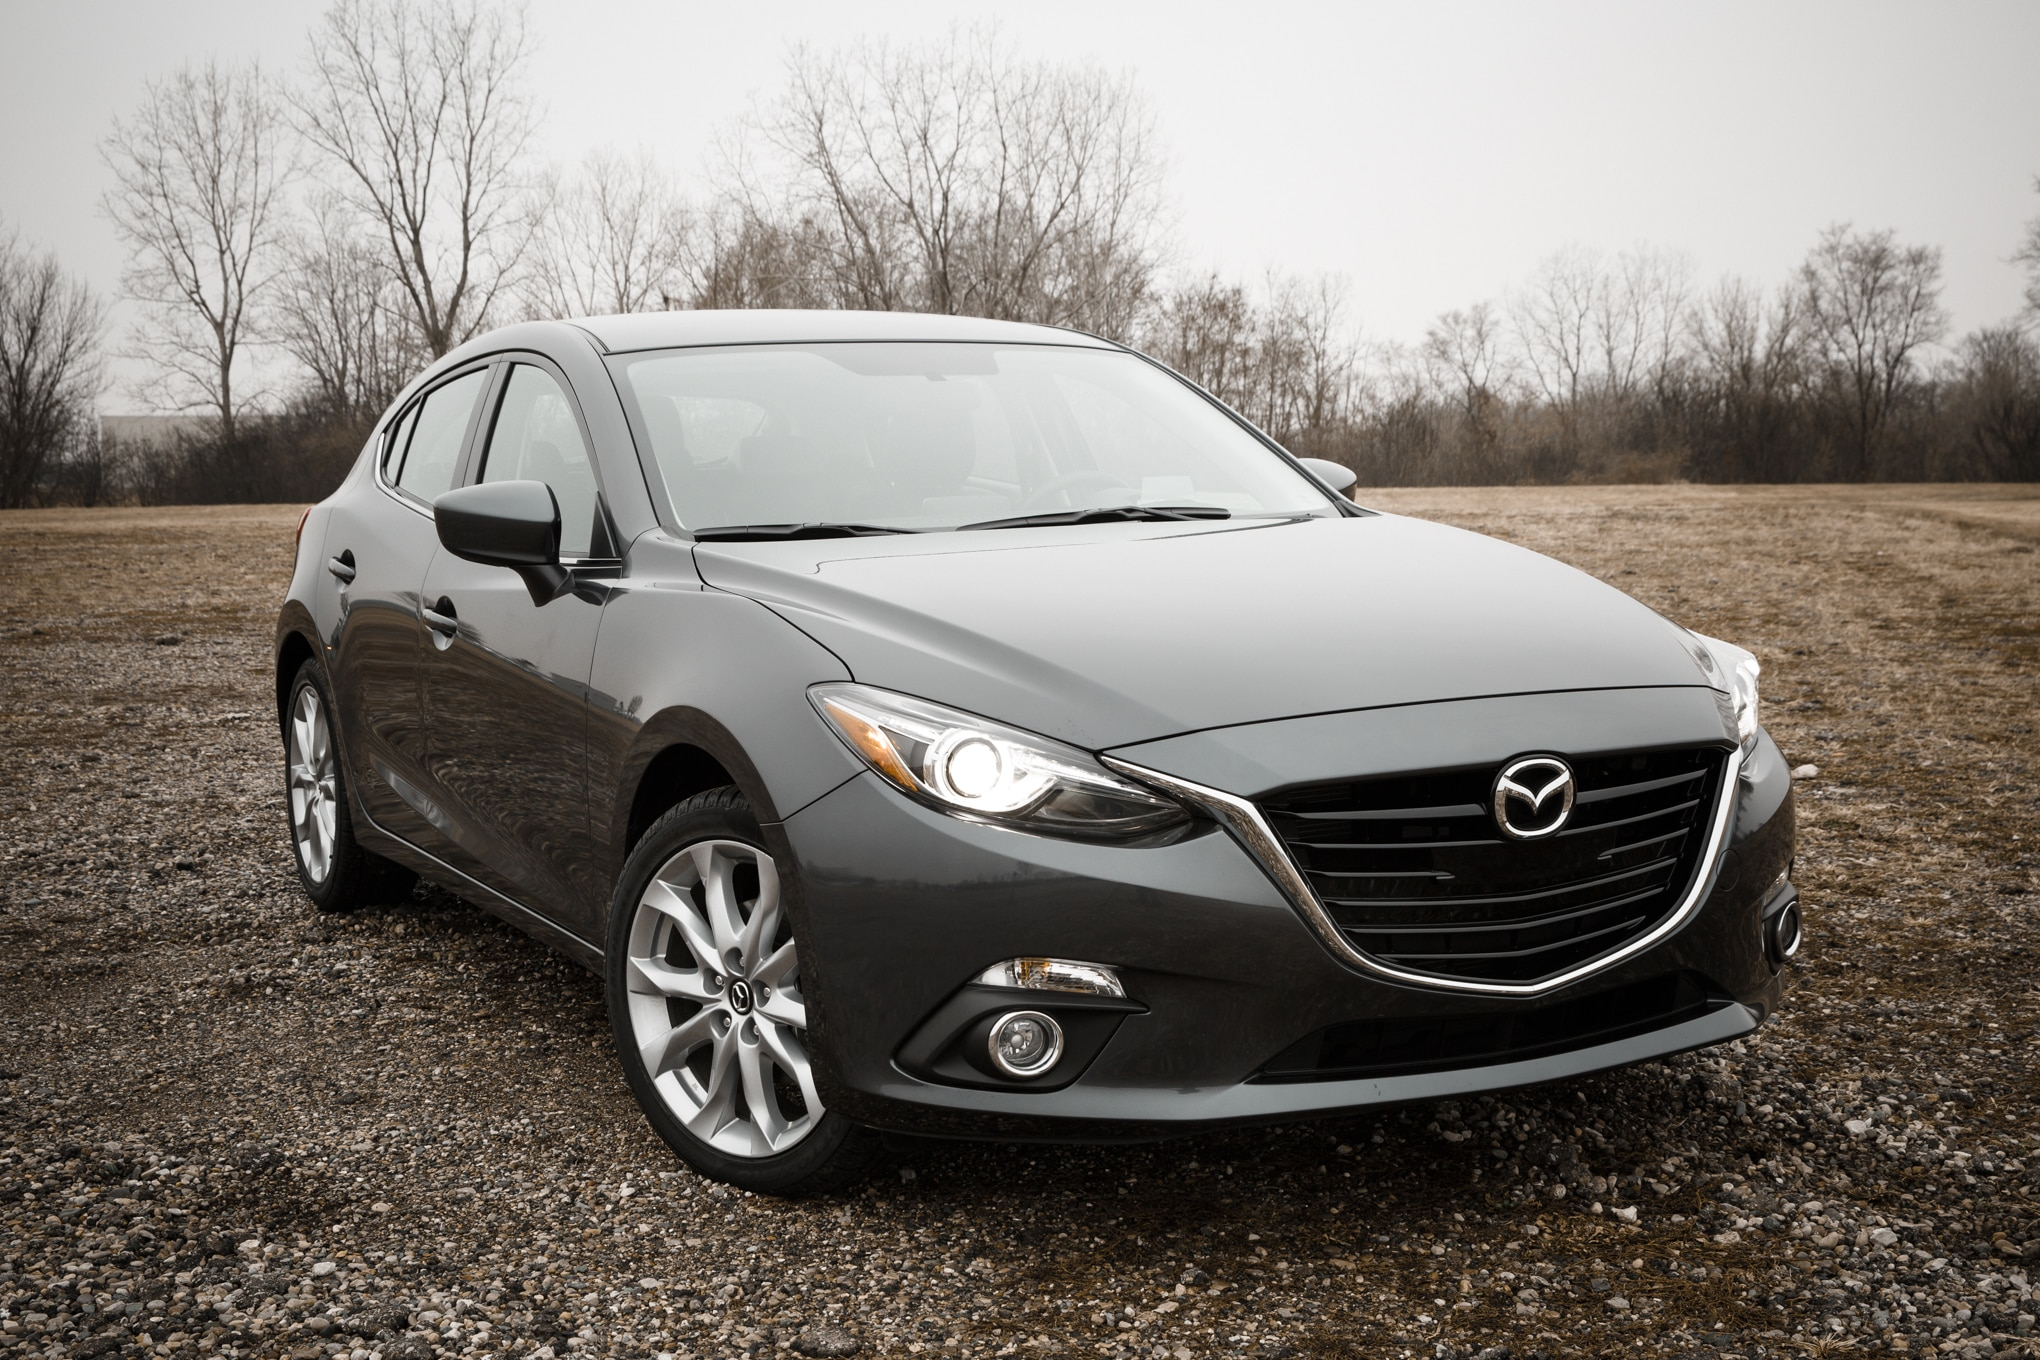 2014 Mazda 3 Four Seasons Introduction Front Three Quarter1